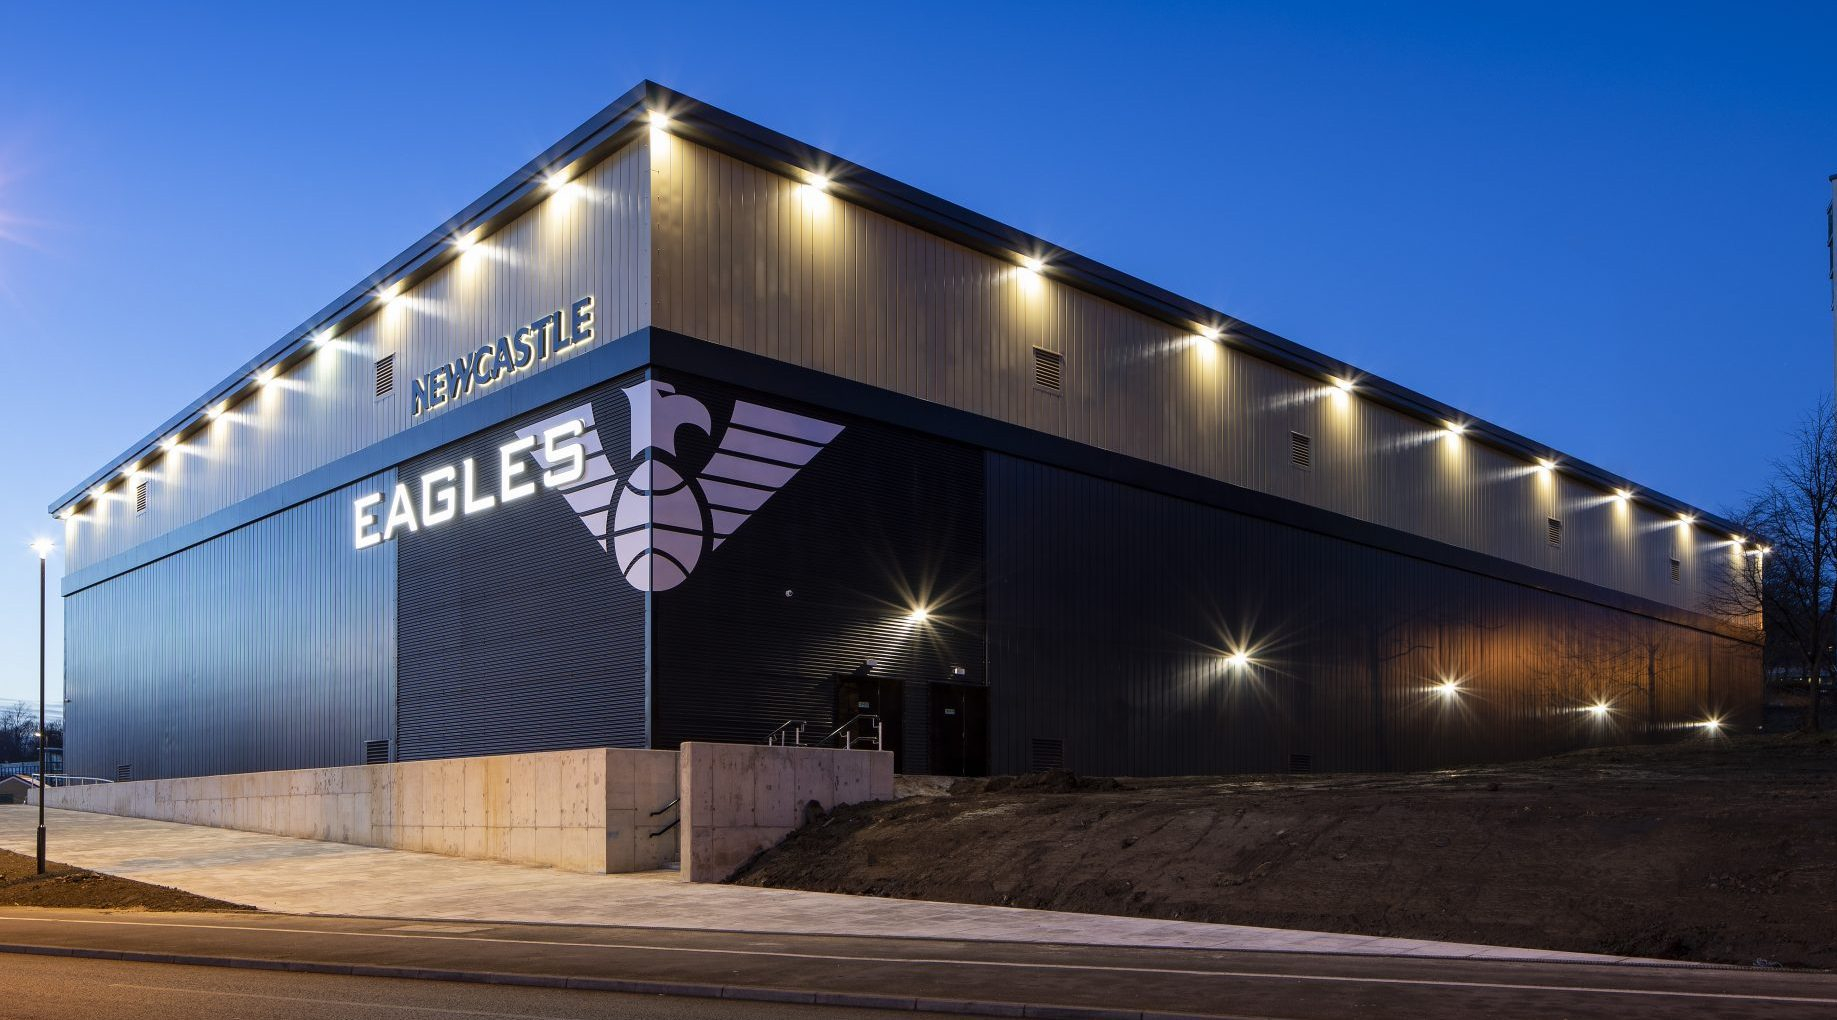 Stadium vendors get to attend every game for free and often have a great view of the action. Eagles Community Arena - Newcastle Eagles